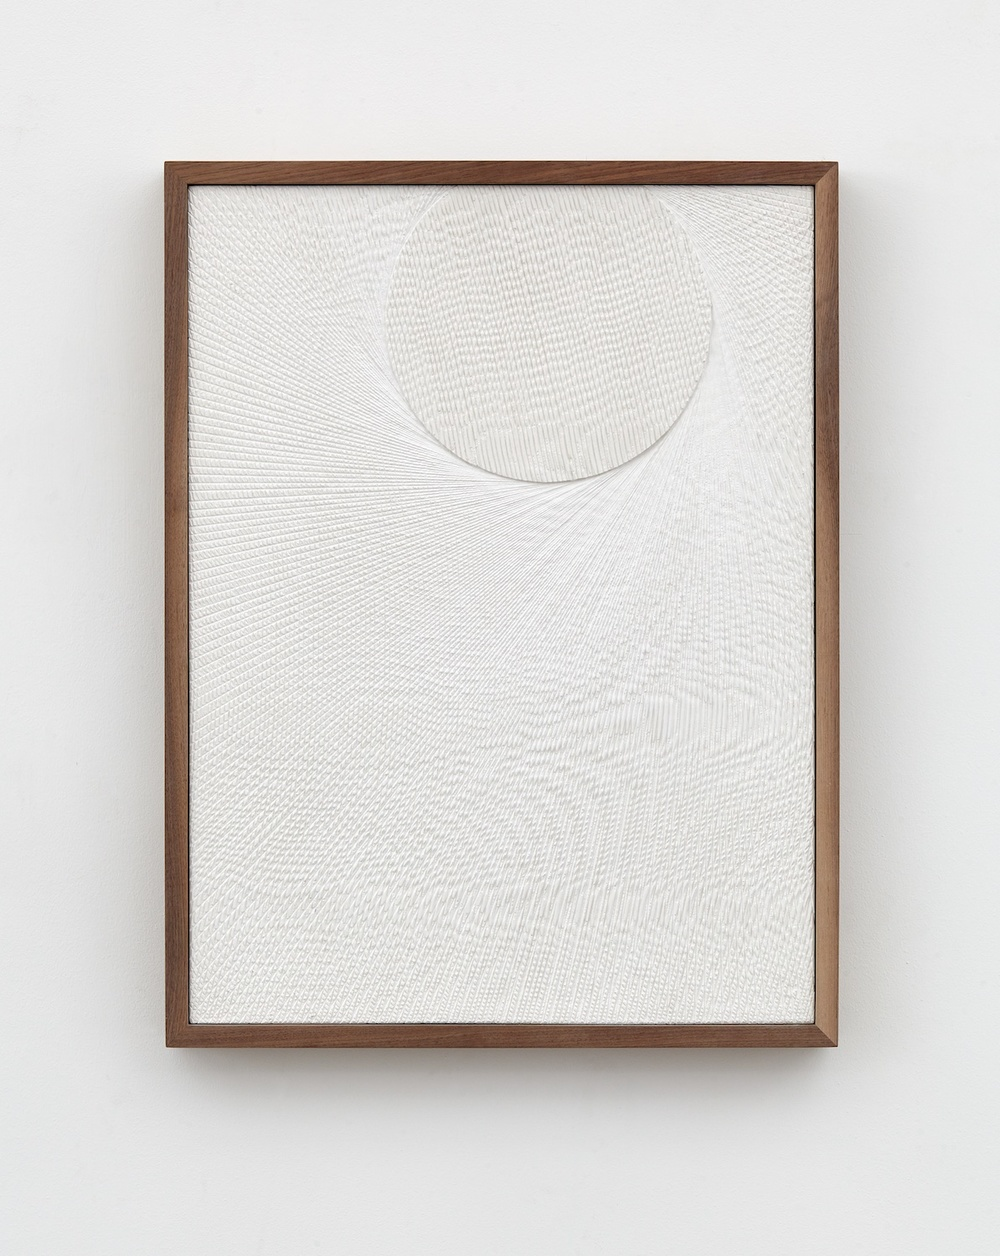 "Anthony Pearson Untitled (Etched Plaster) 2015 Hydrocal in walnut frame 24 ½"" x 18 ½"" x 2"" AP369"